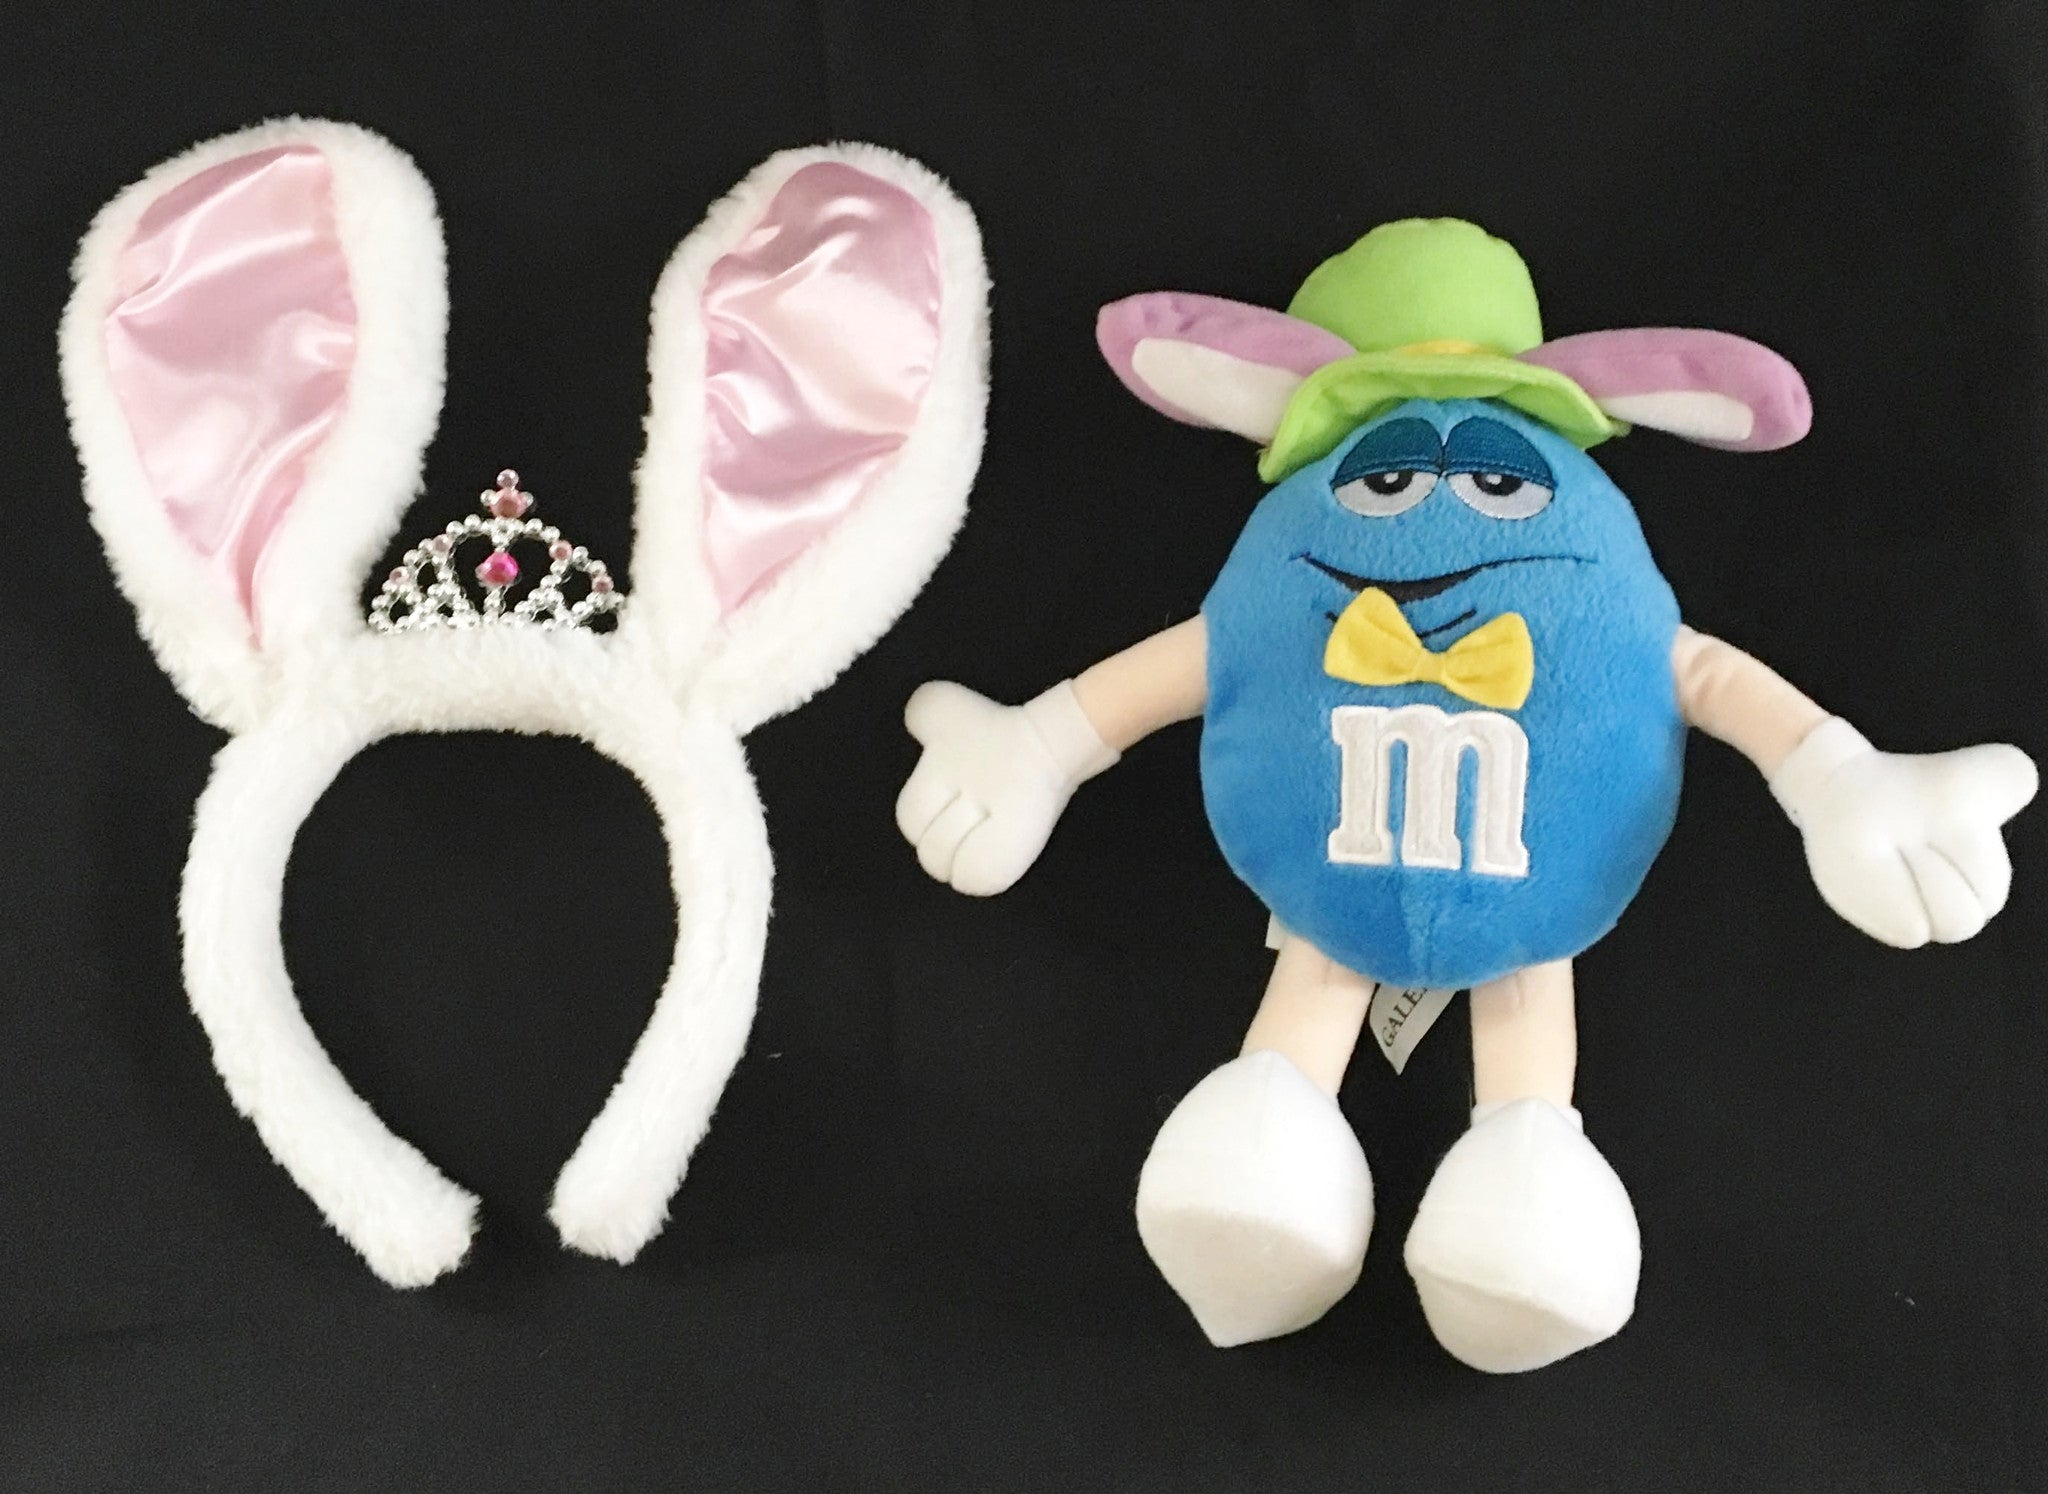 Easter Egg Hunt Prizes (2)